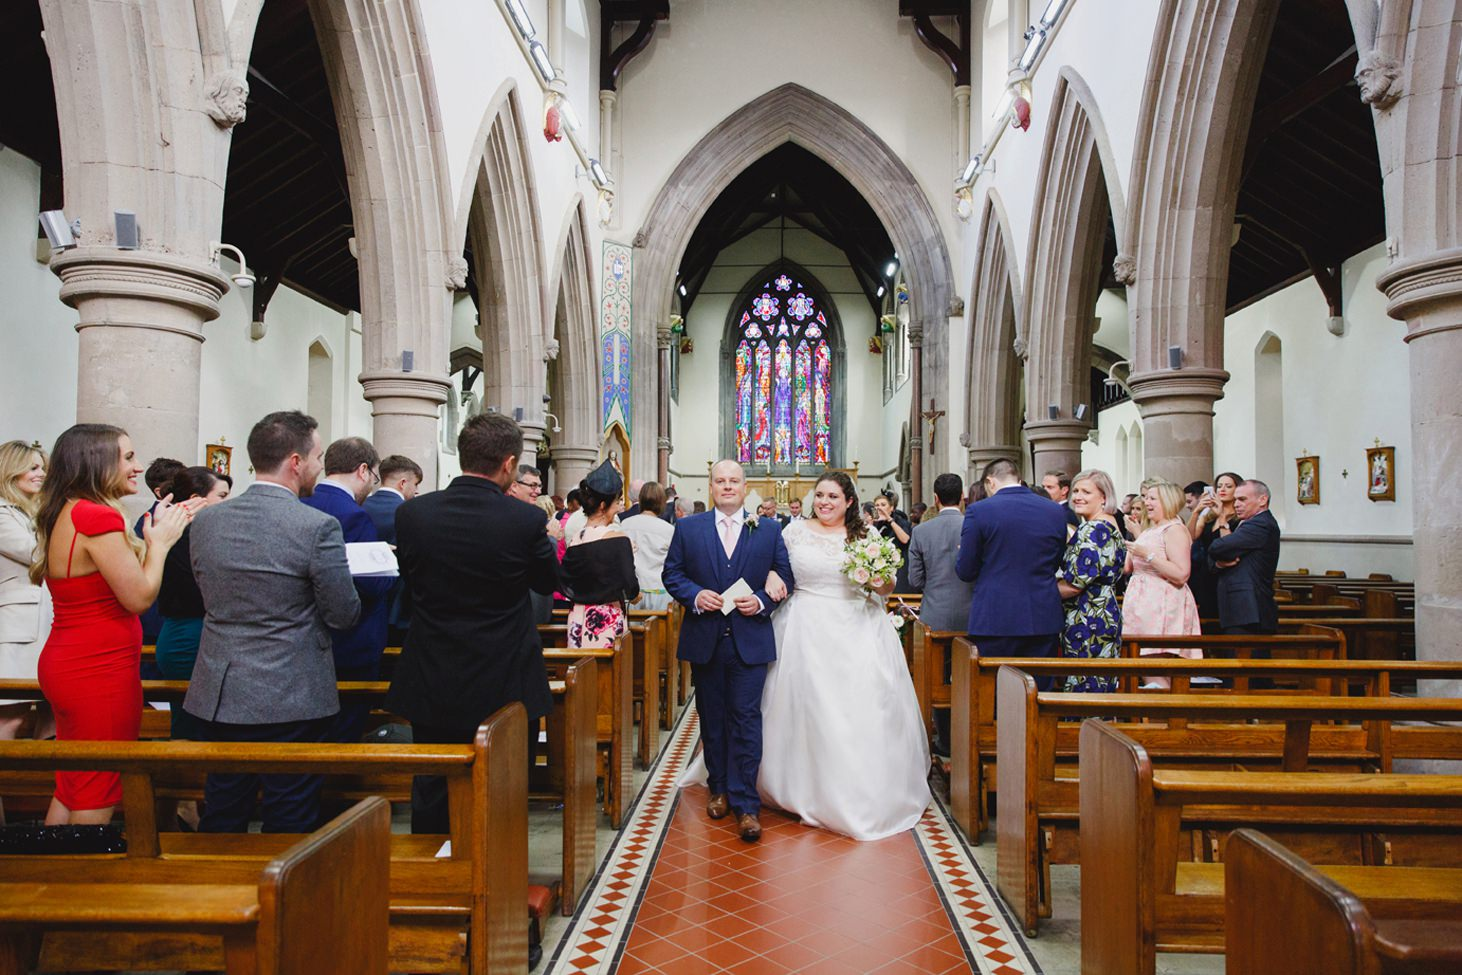 Coombe Abbey wedding photography Sarah Ann Wright 040